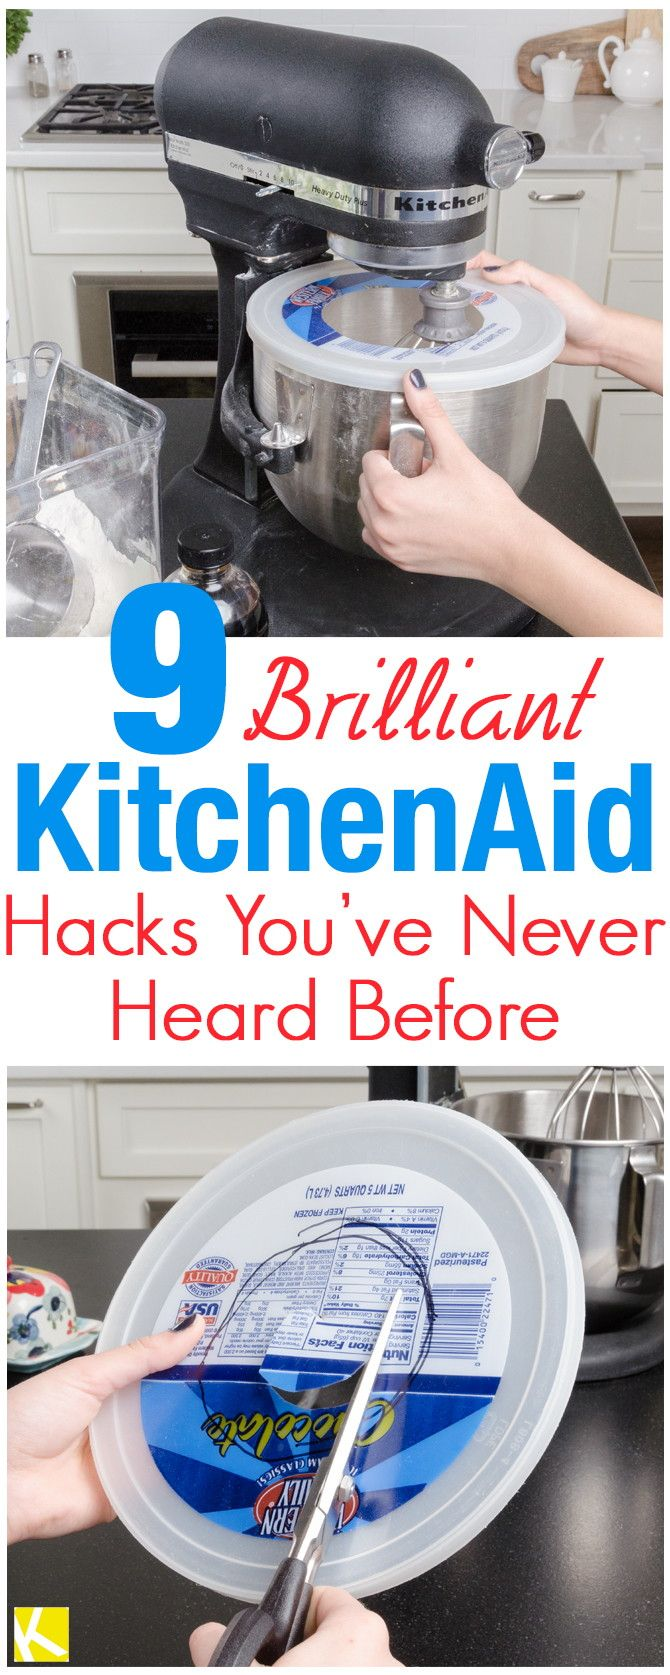 9 Brilliant KitchenAid Hacks You've Never Heard Before - The Krazy Coupon Lady